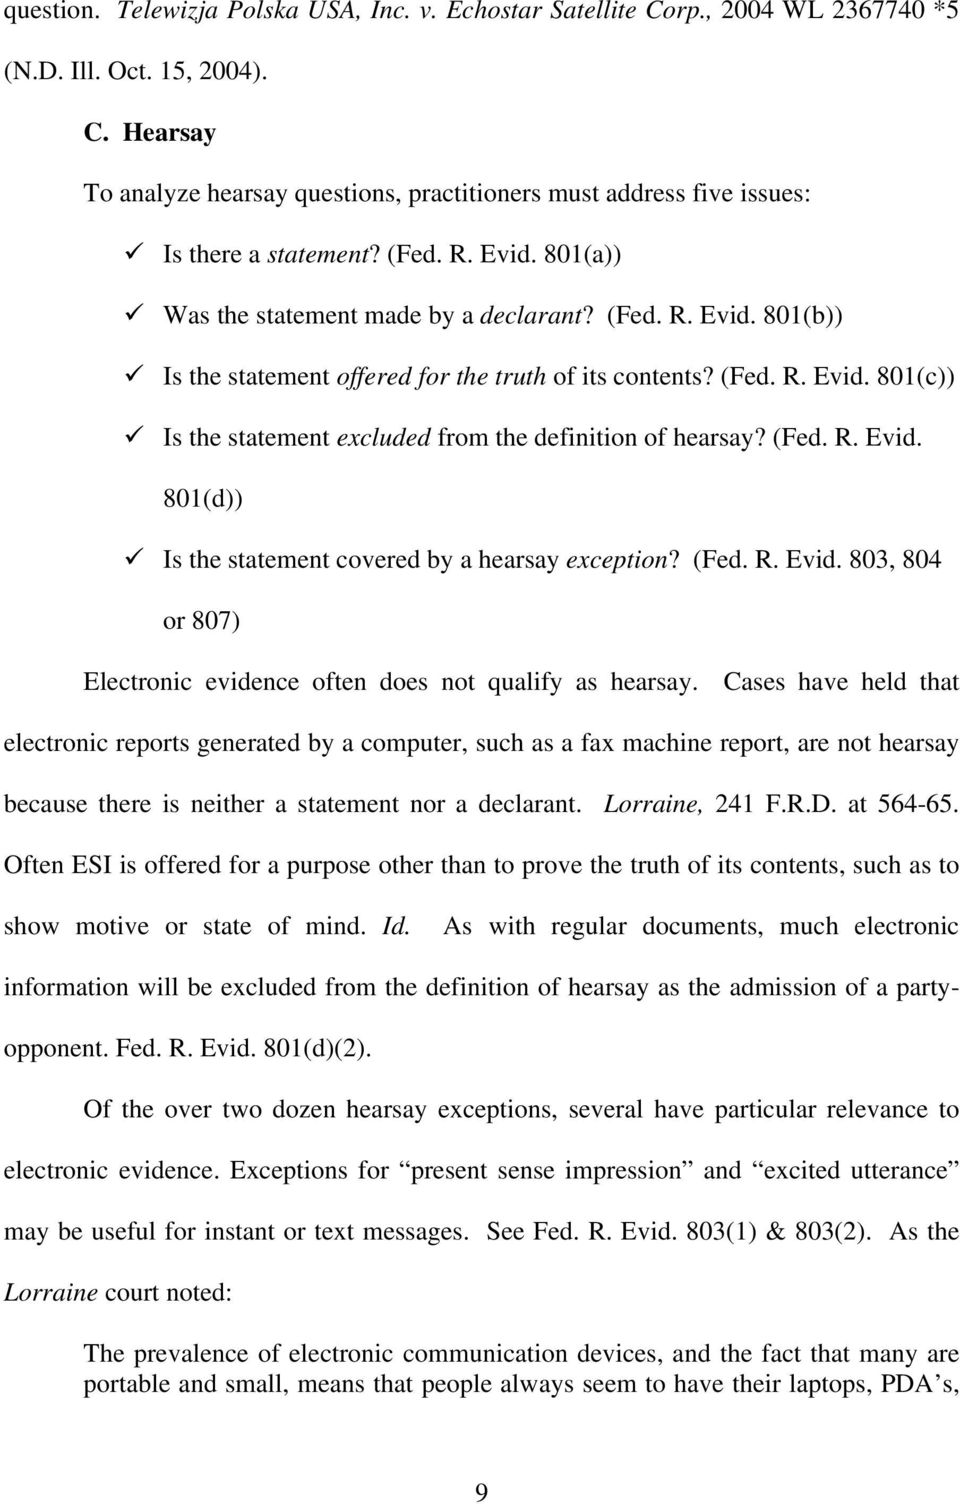 (Fed. R. Evid. 801(d)) Is the statement covered by a hearsay exception? (Fed. R. Evid. 803, 804 or 807) Electronic evidence often does not qualify as hearsay.